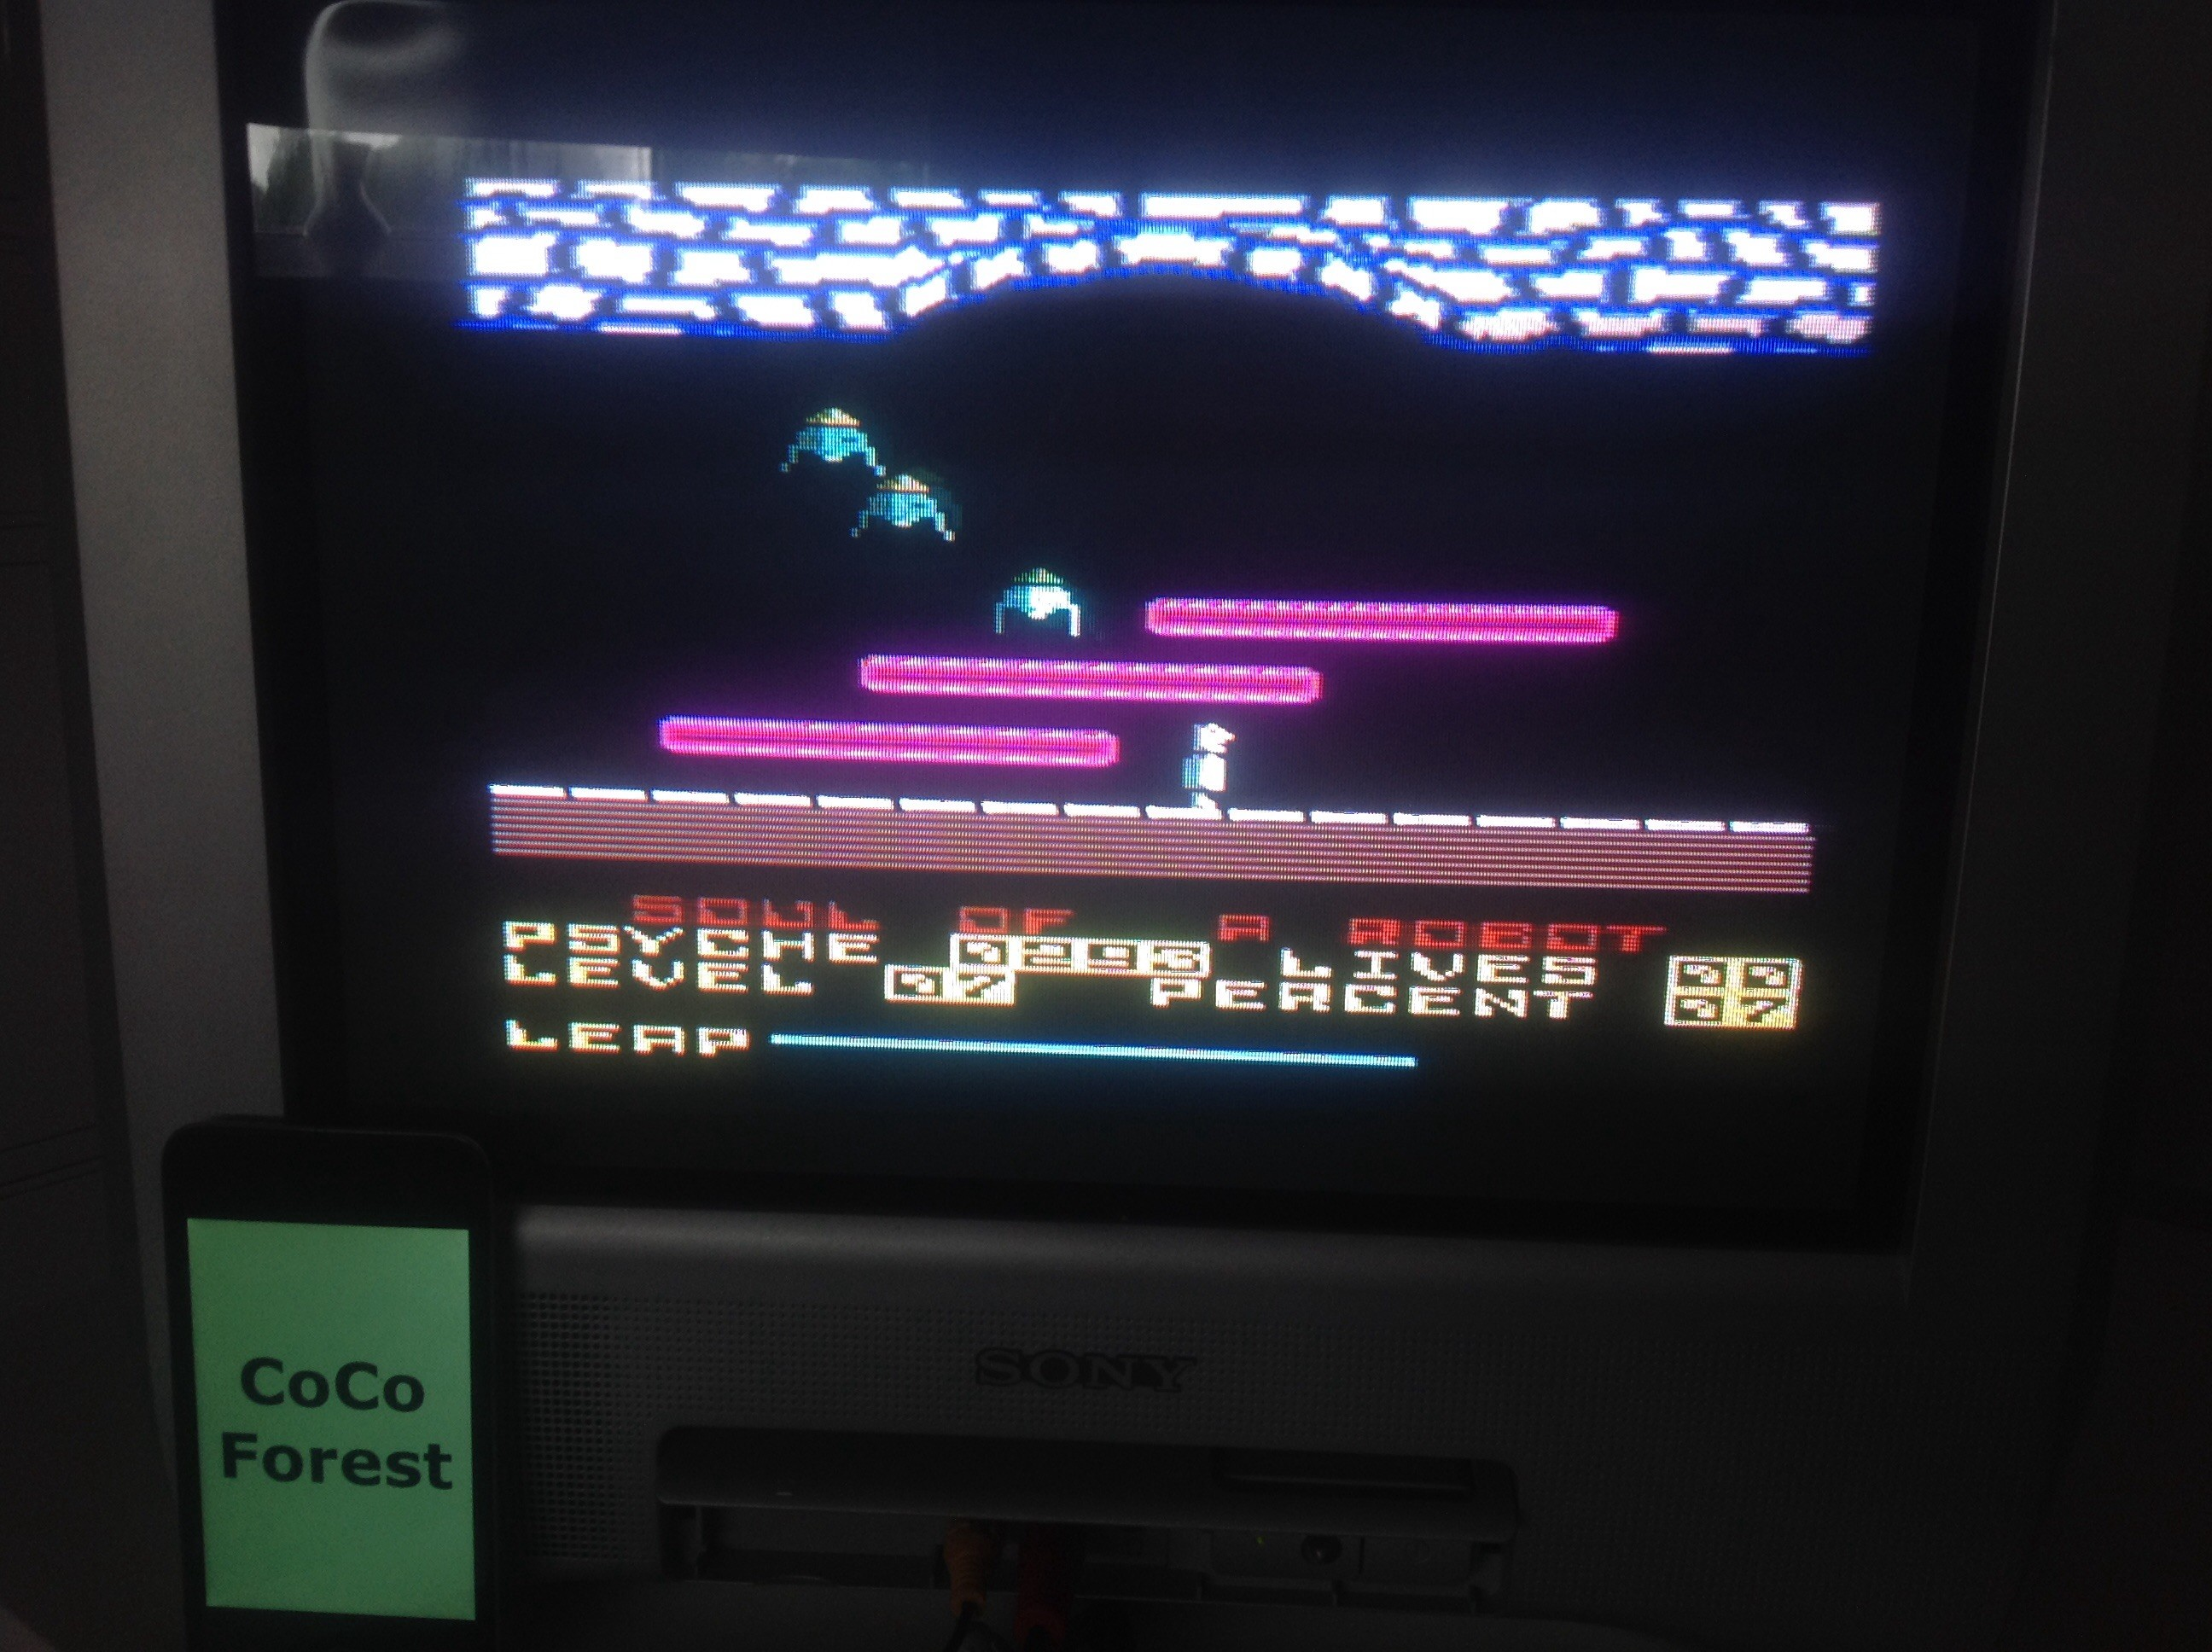 CoCoForest: Soul Of A Robot (Amstrad CPC) 7 points on 2015-06-22 07:35:45